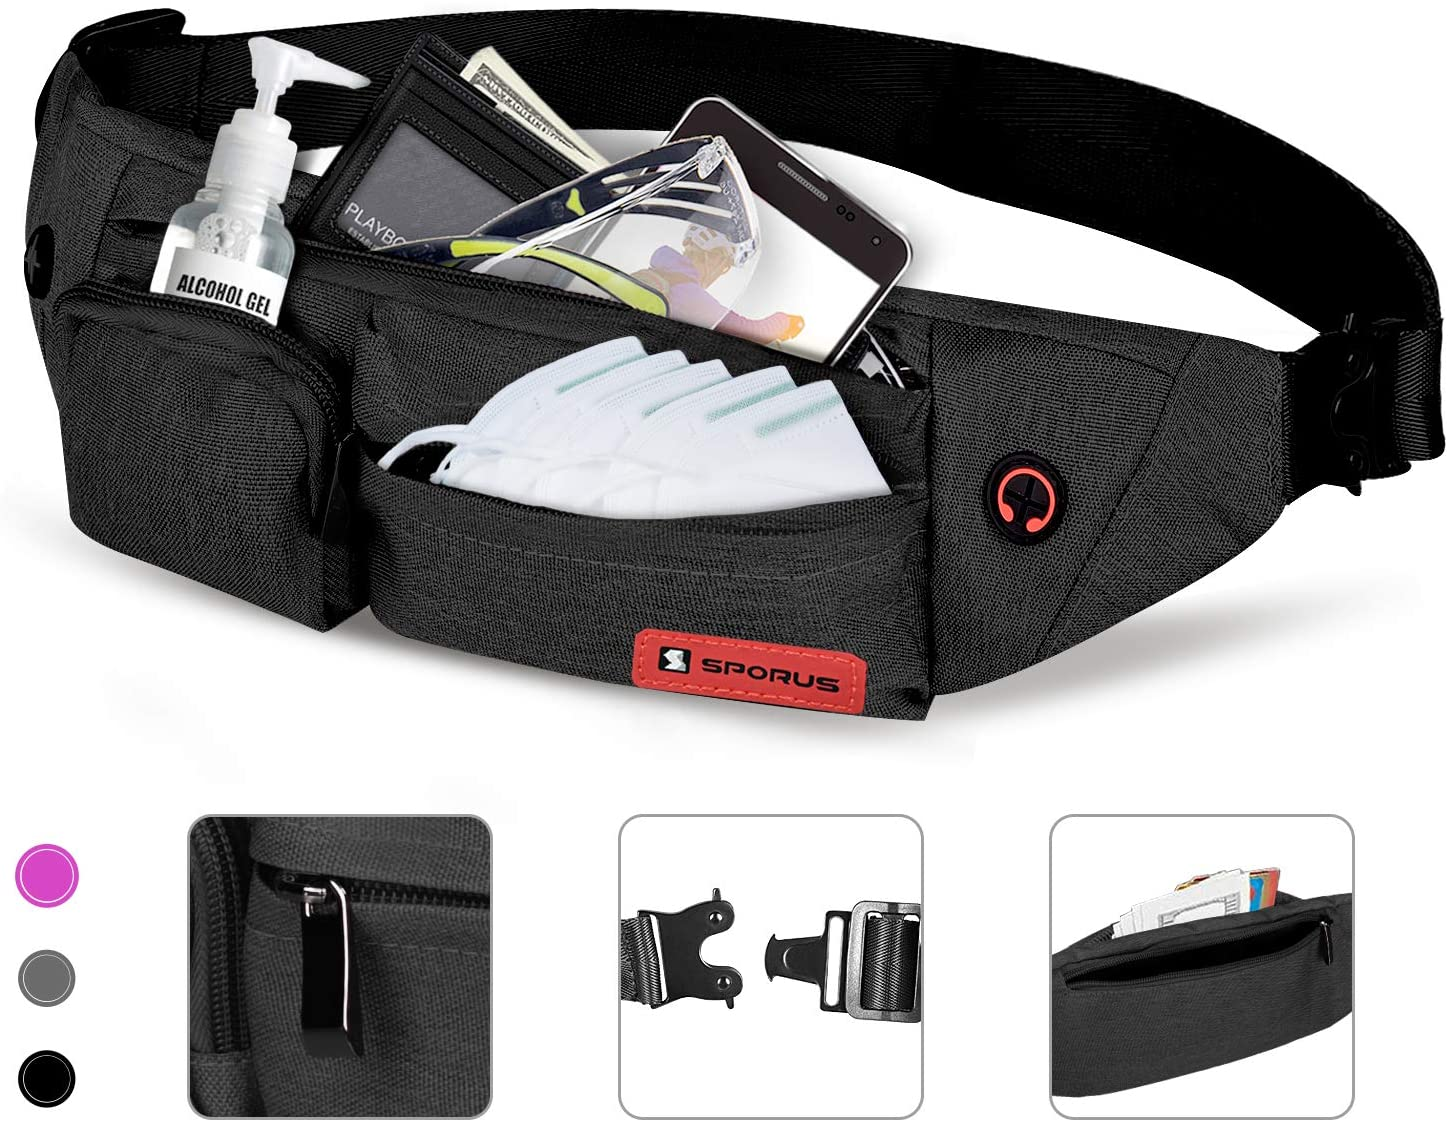 SPORUS Fanny Pack for Men and Women, Waist Bag with 4 Zipper Pockets, Belt Bag Soft Polyester for Running Hiking Cycling Traveling